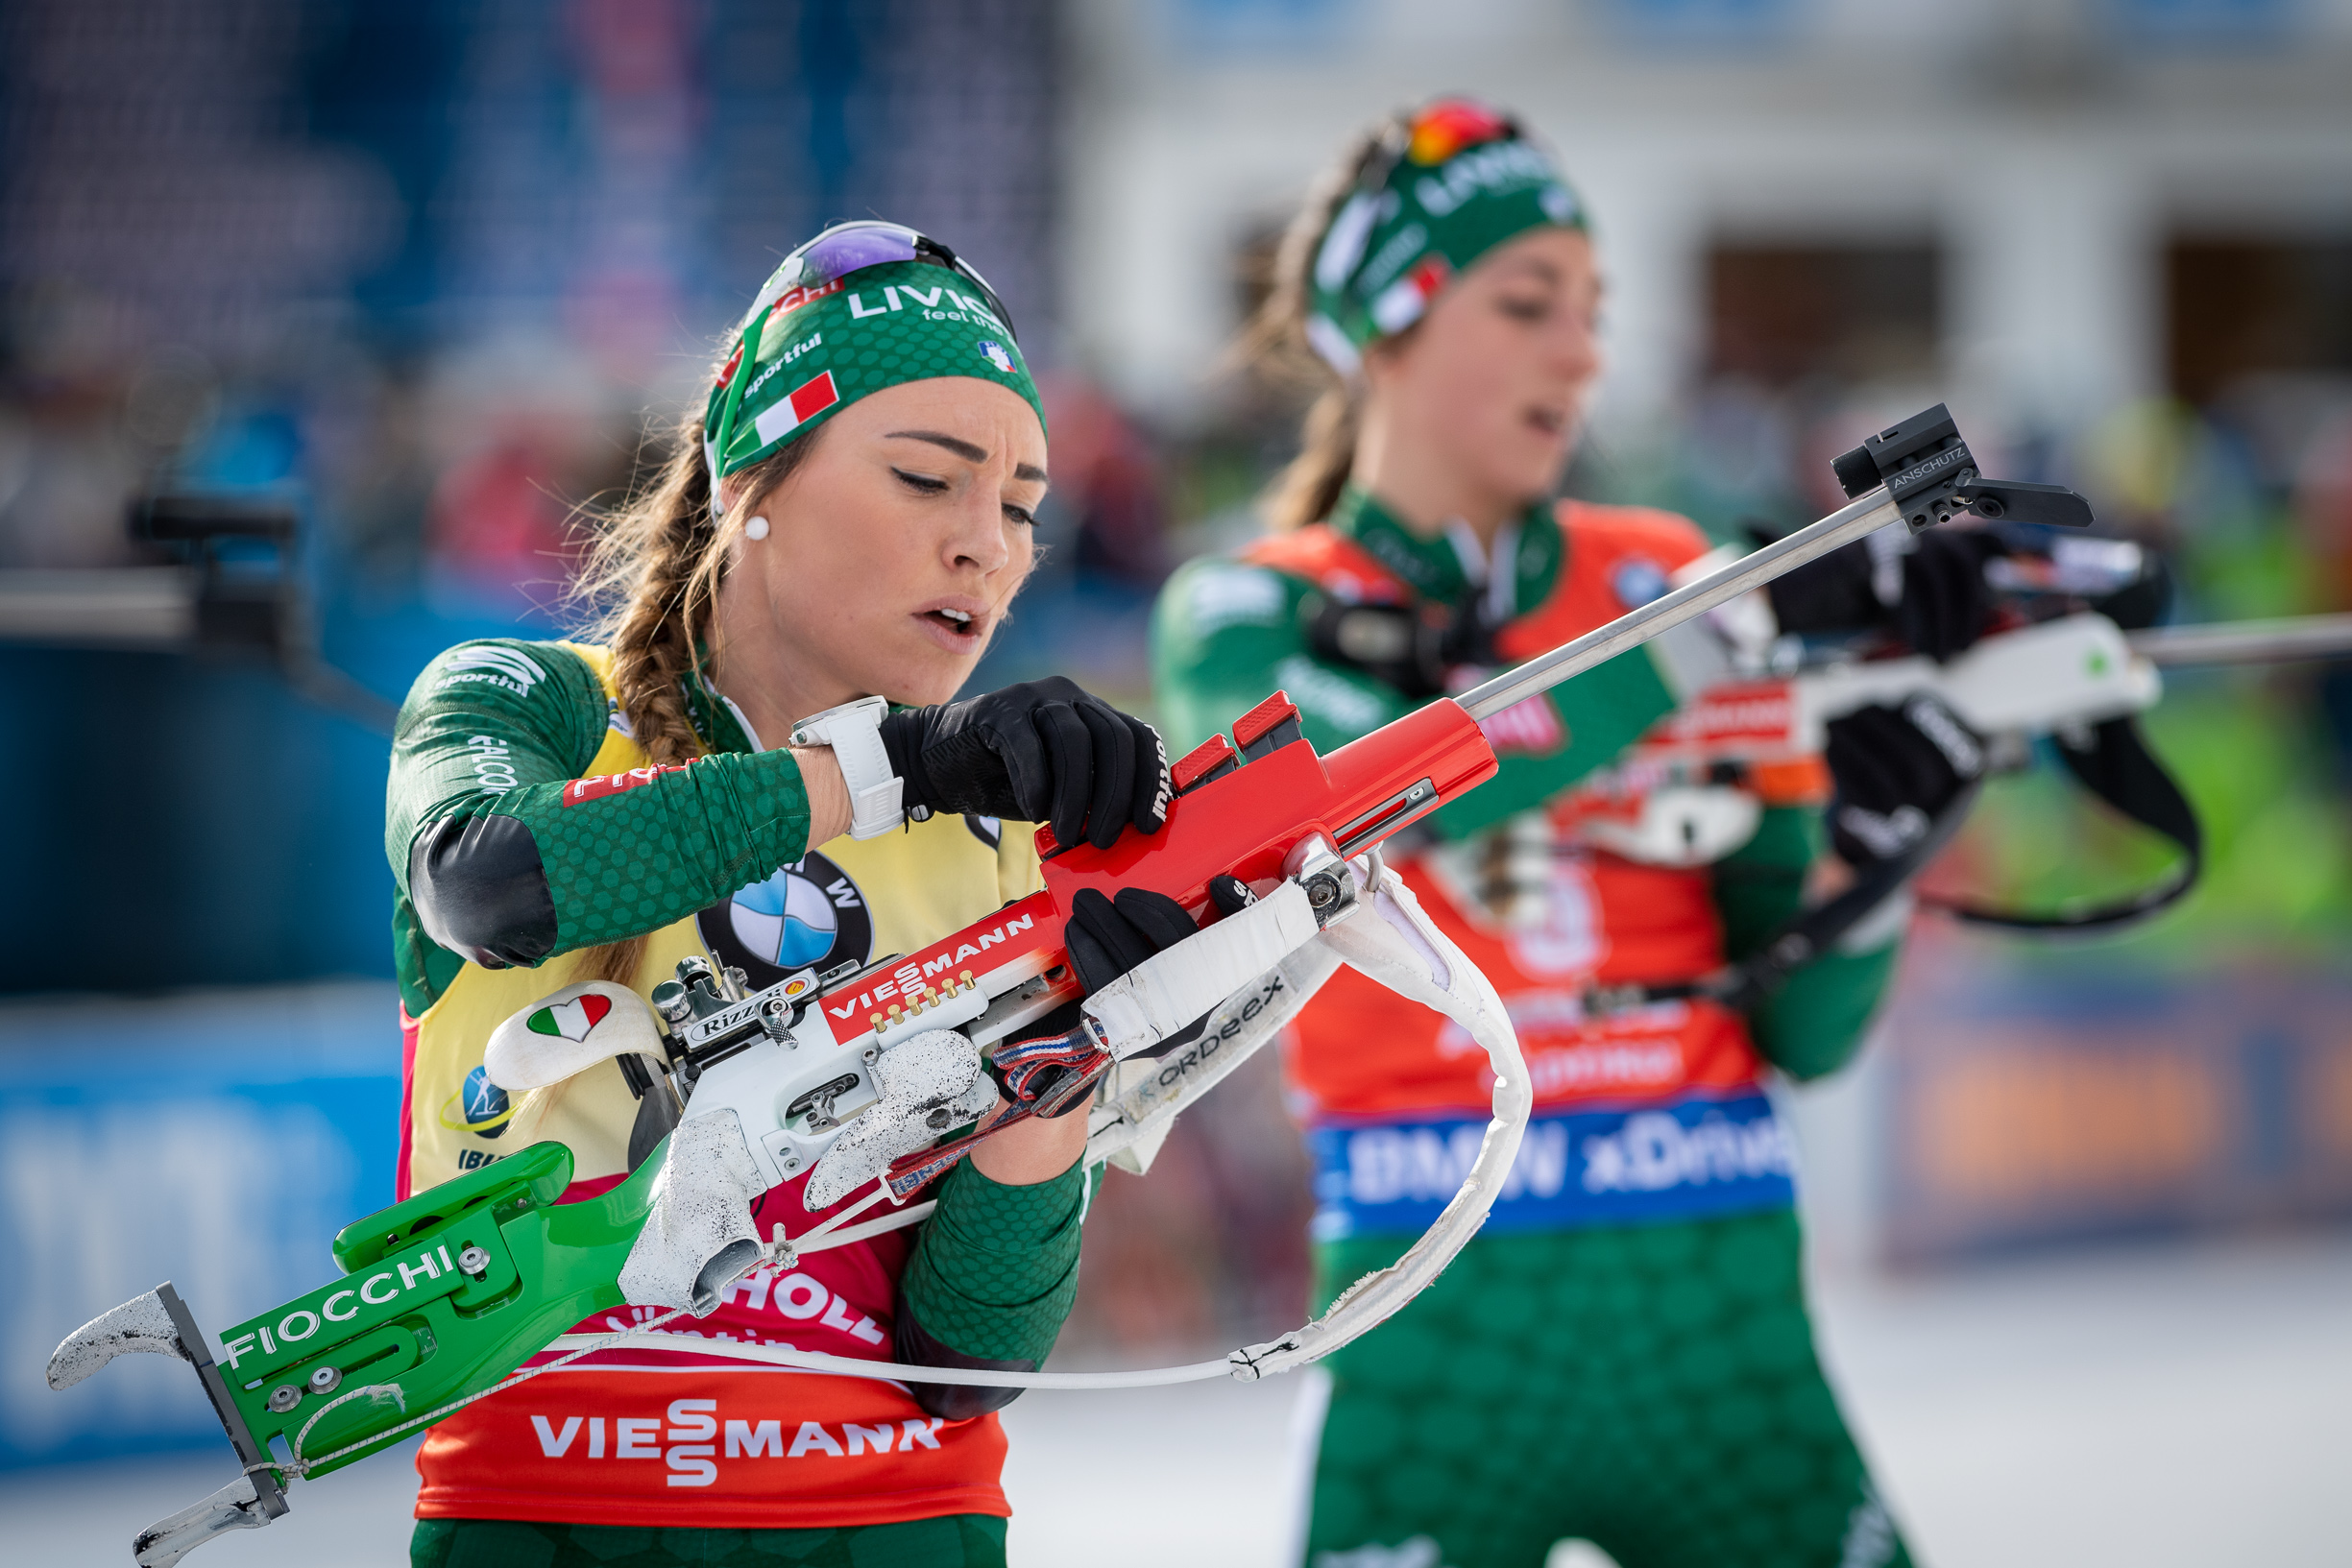 BIATHLON: ALL THE NUMBERS OF A FANTASTIC SEASON